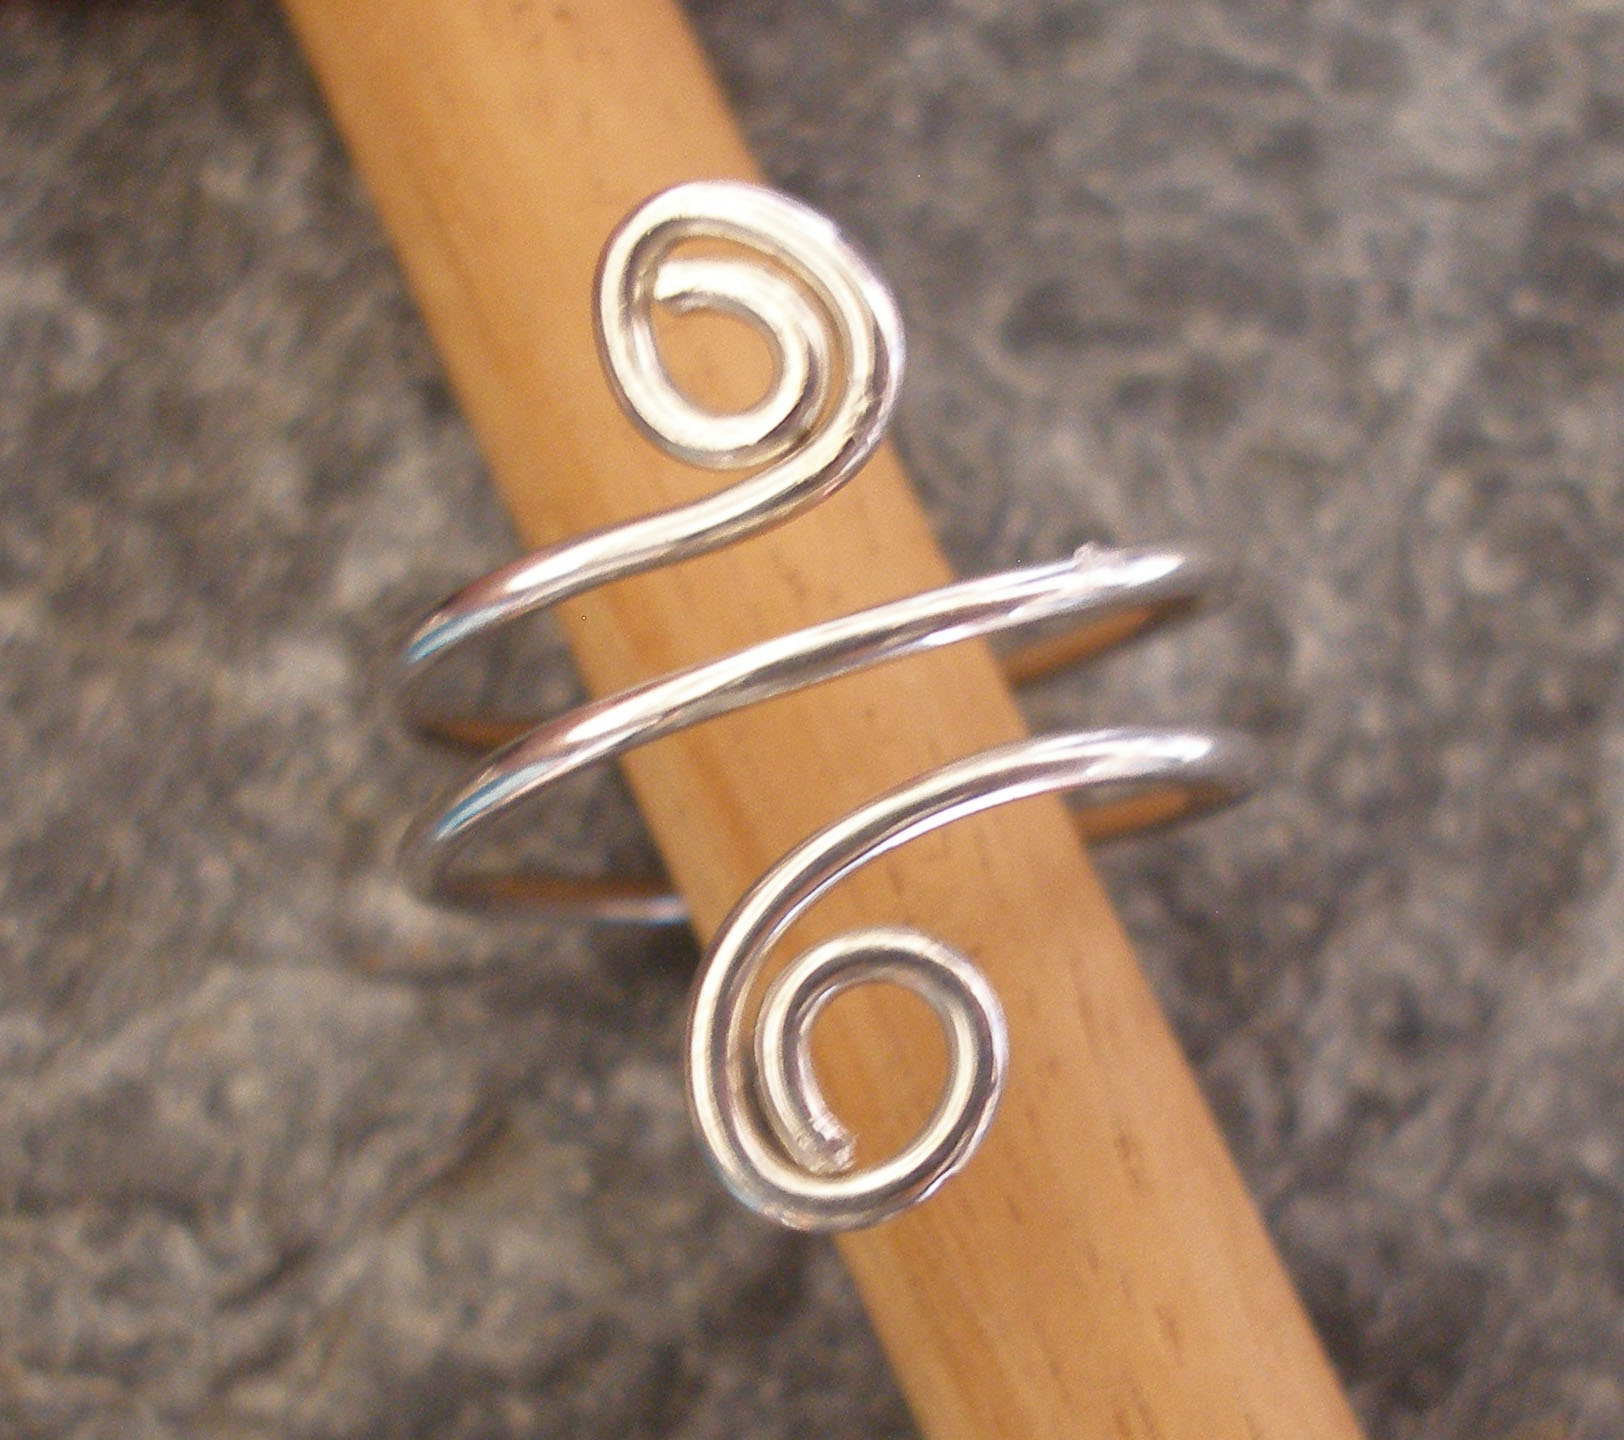 Curvy Silver Spiral Toe Ring or Finger Ring